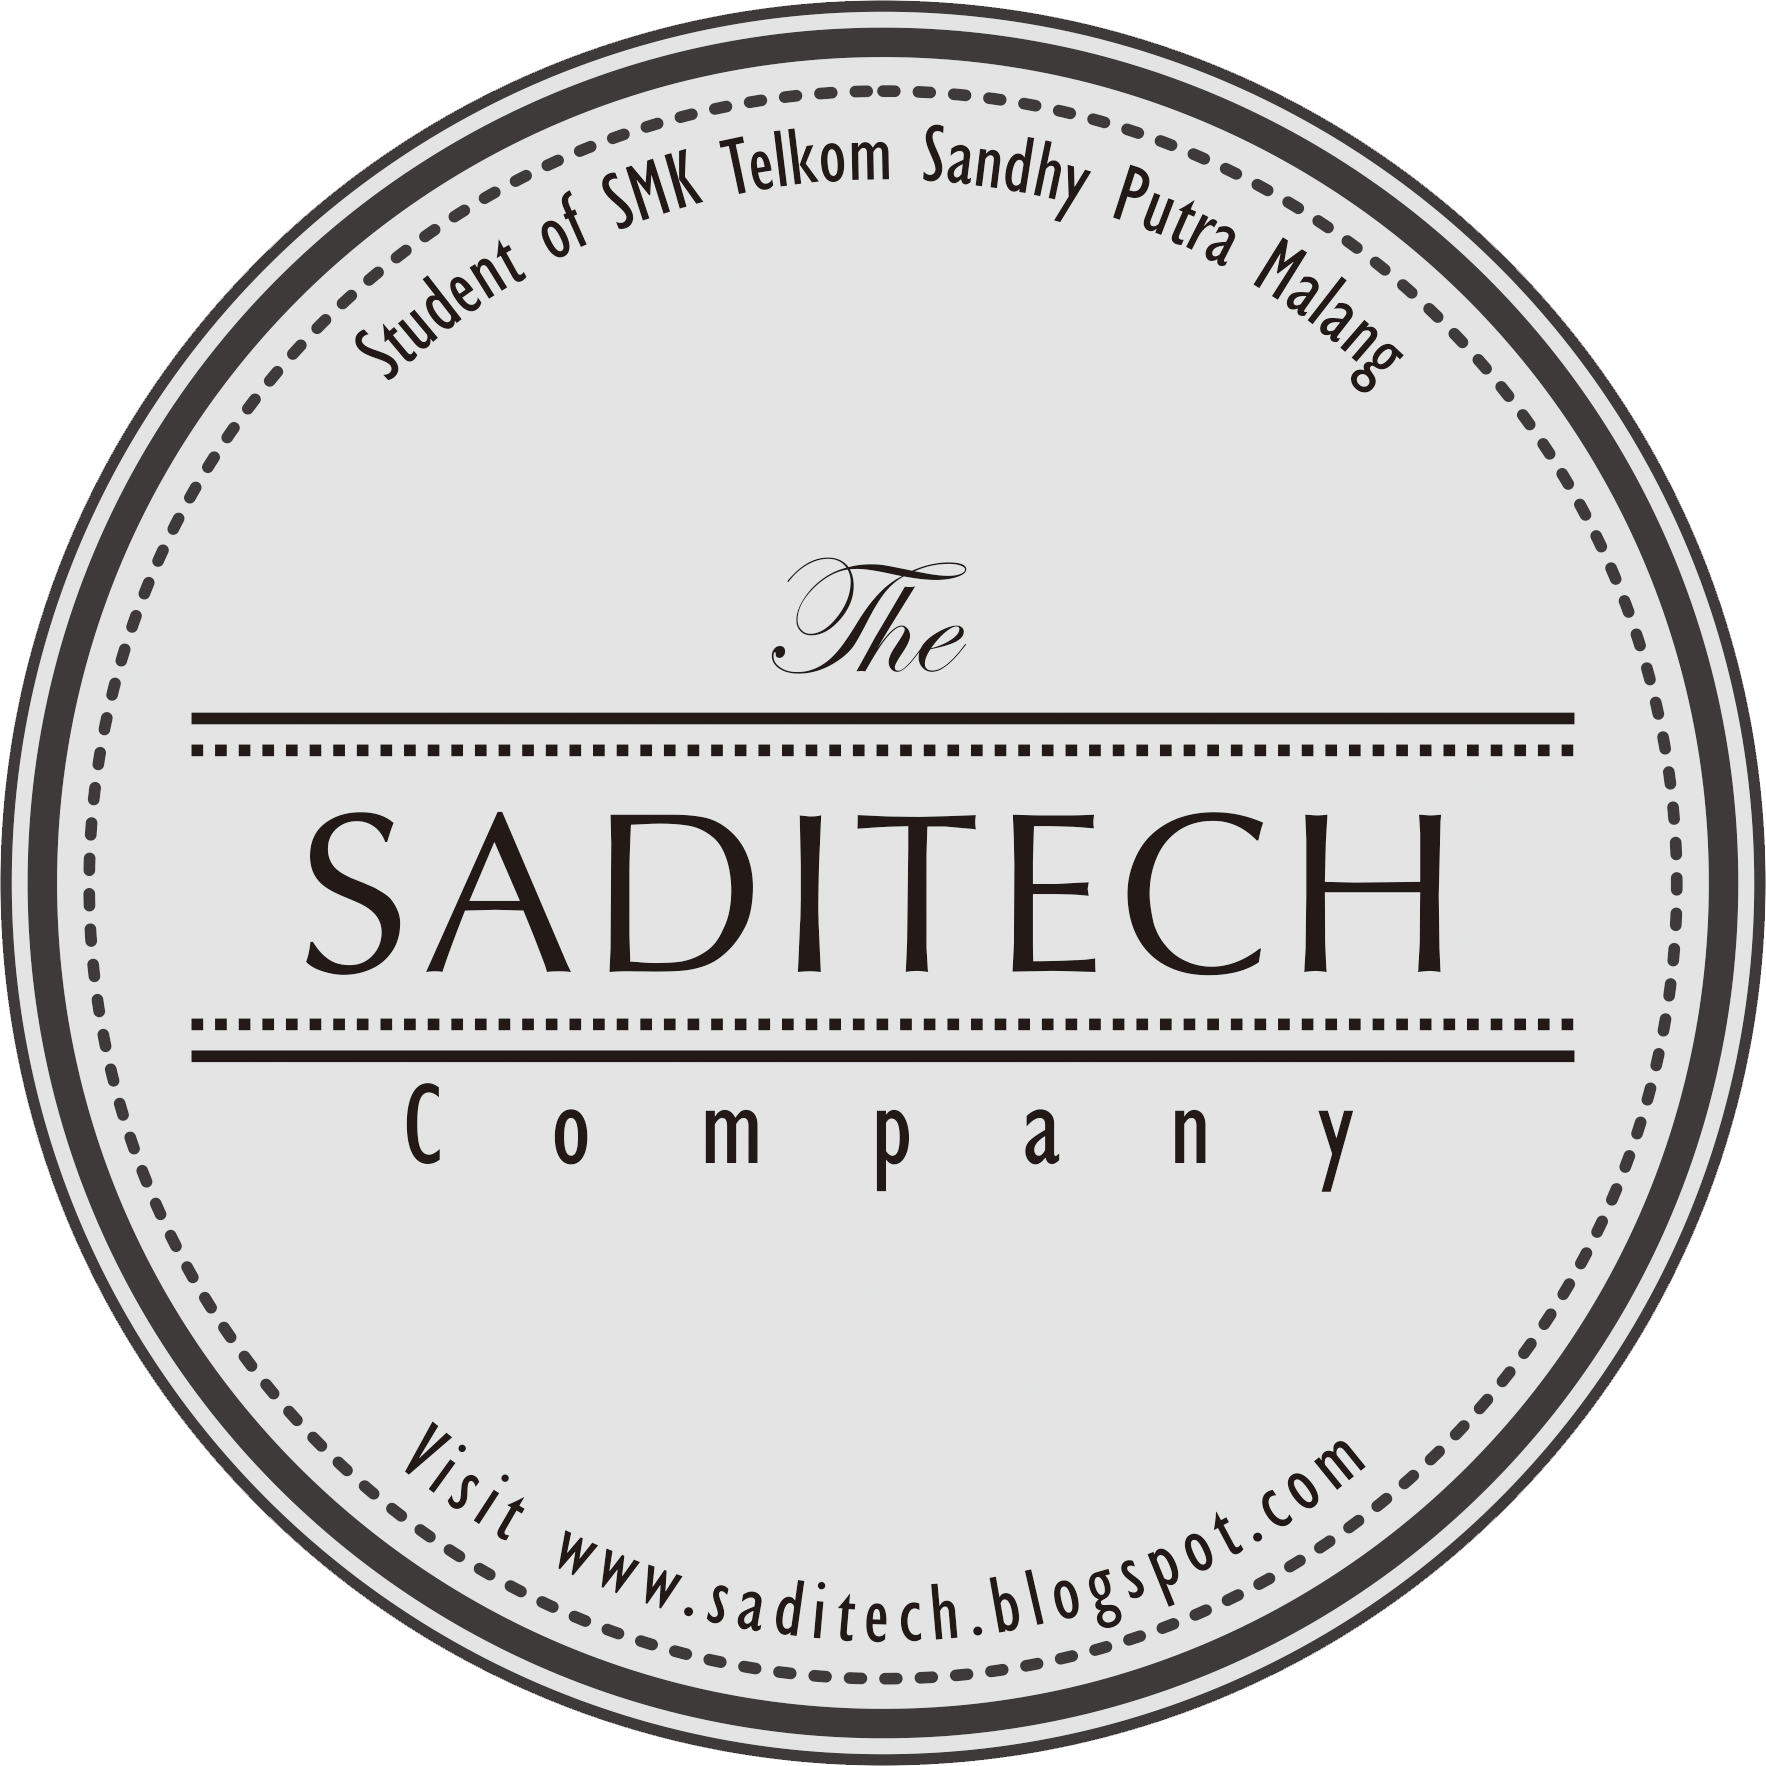 The saditech company 2